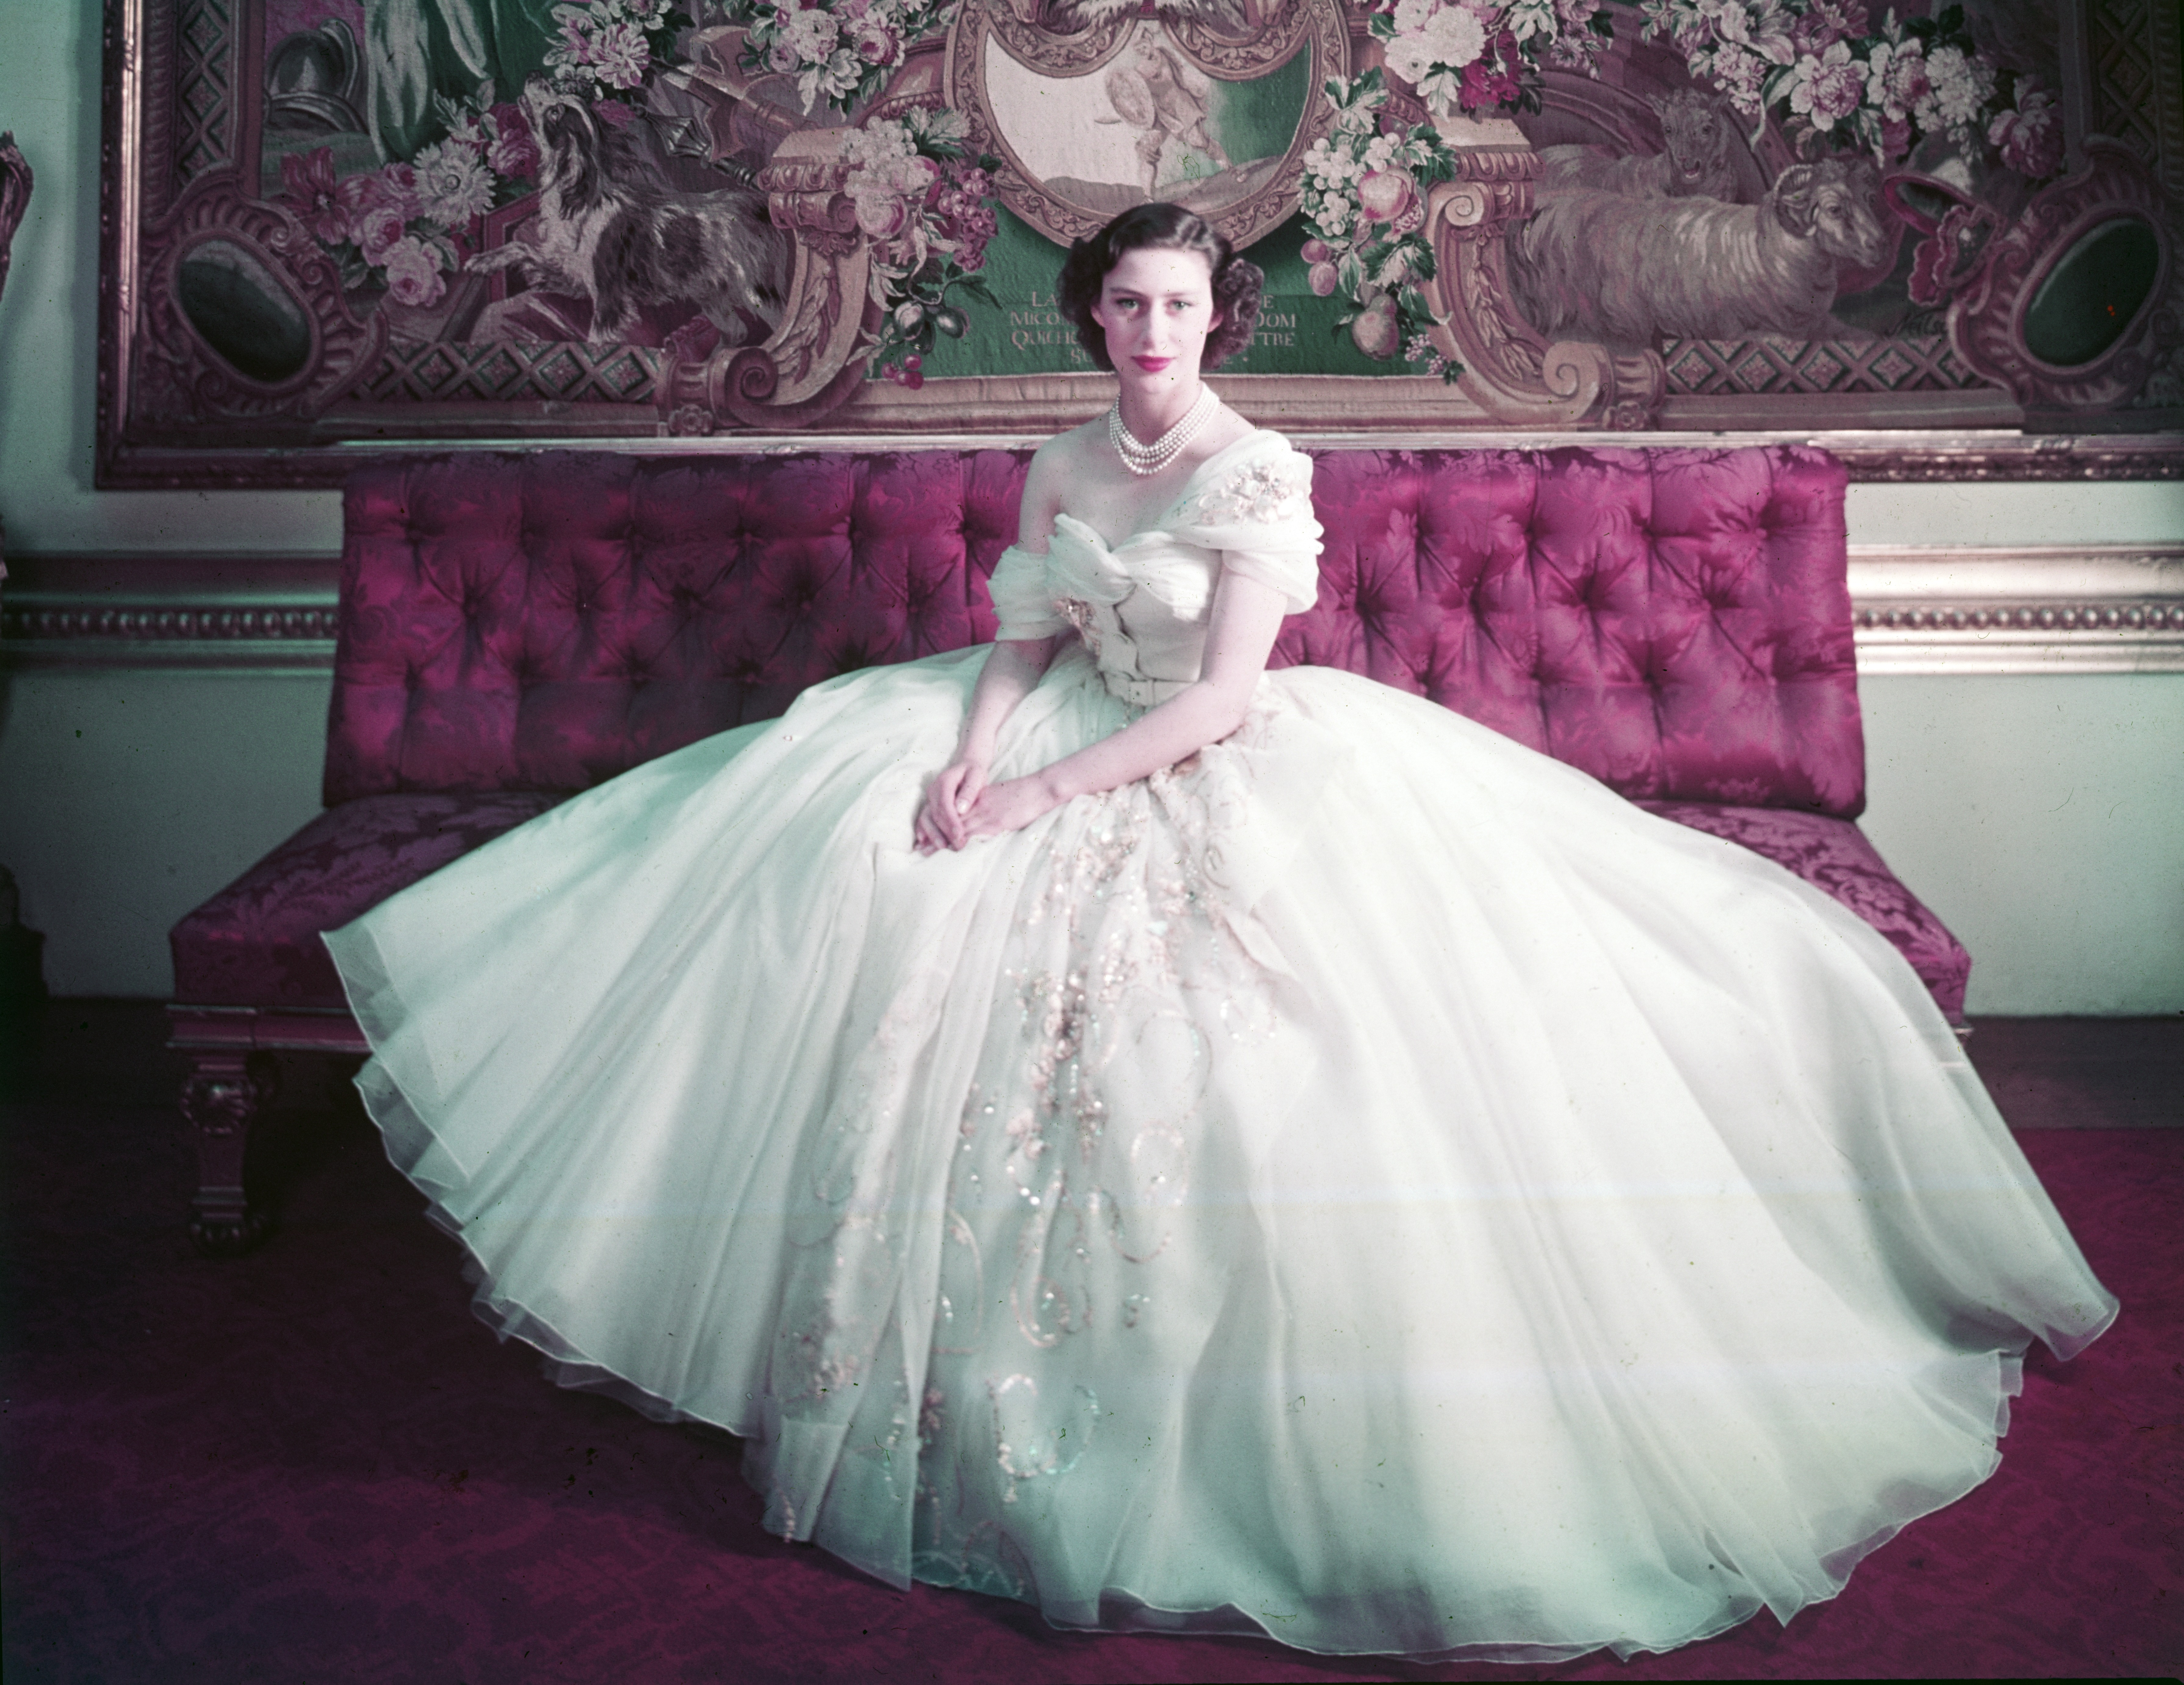 Princess Margaret photographed by Cecil Beaton